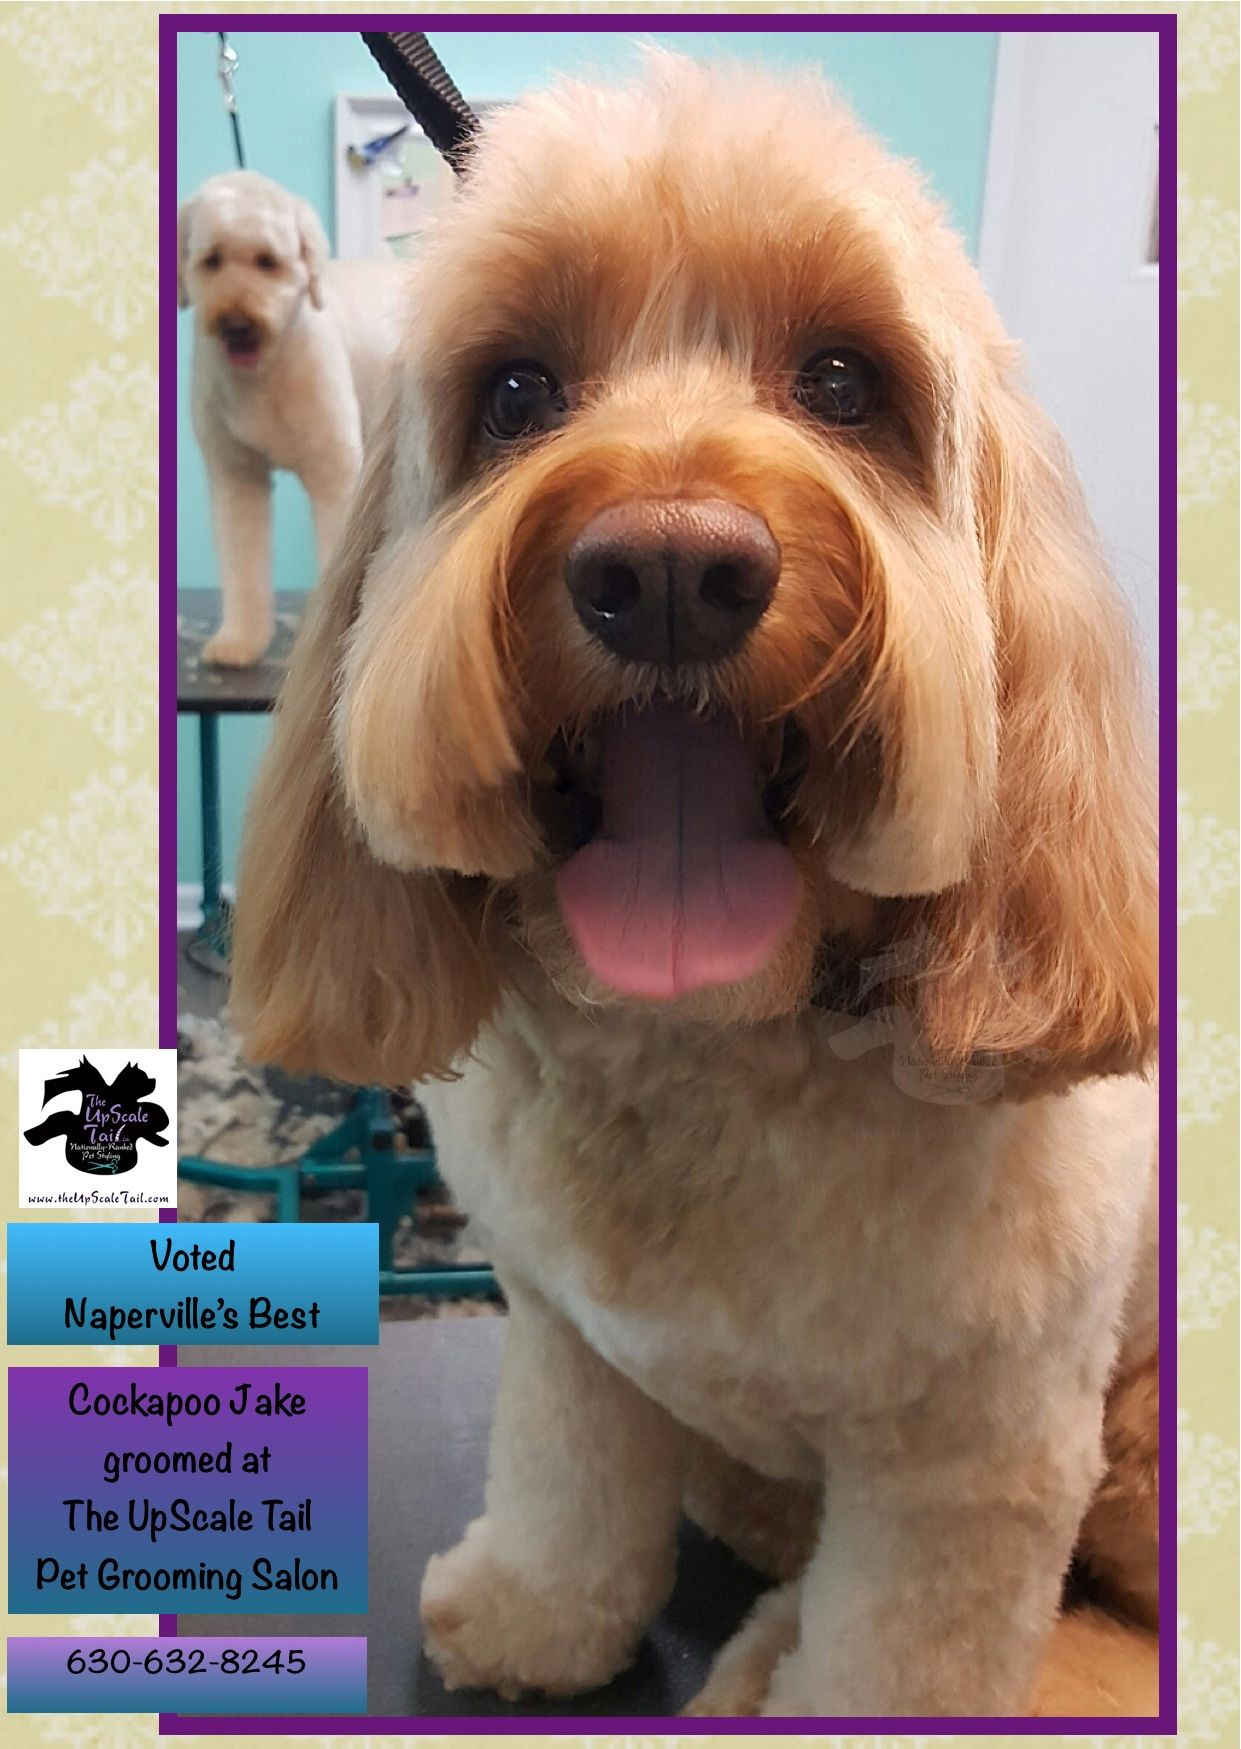 Cockapoo Jake is groomed at The UpScale Tail, Naperville